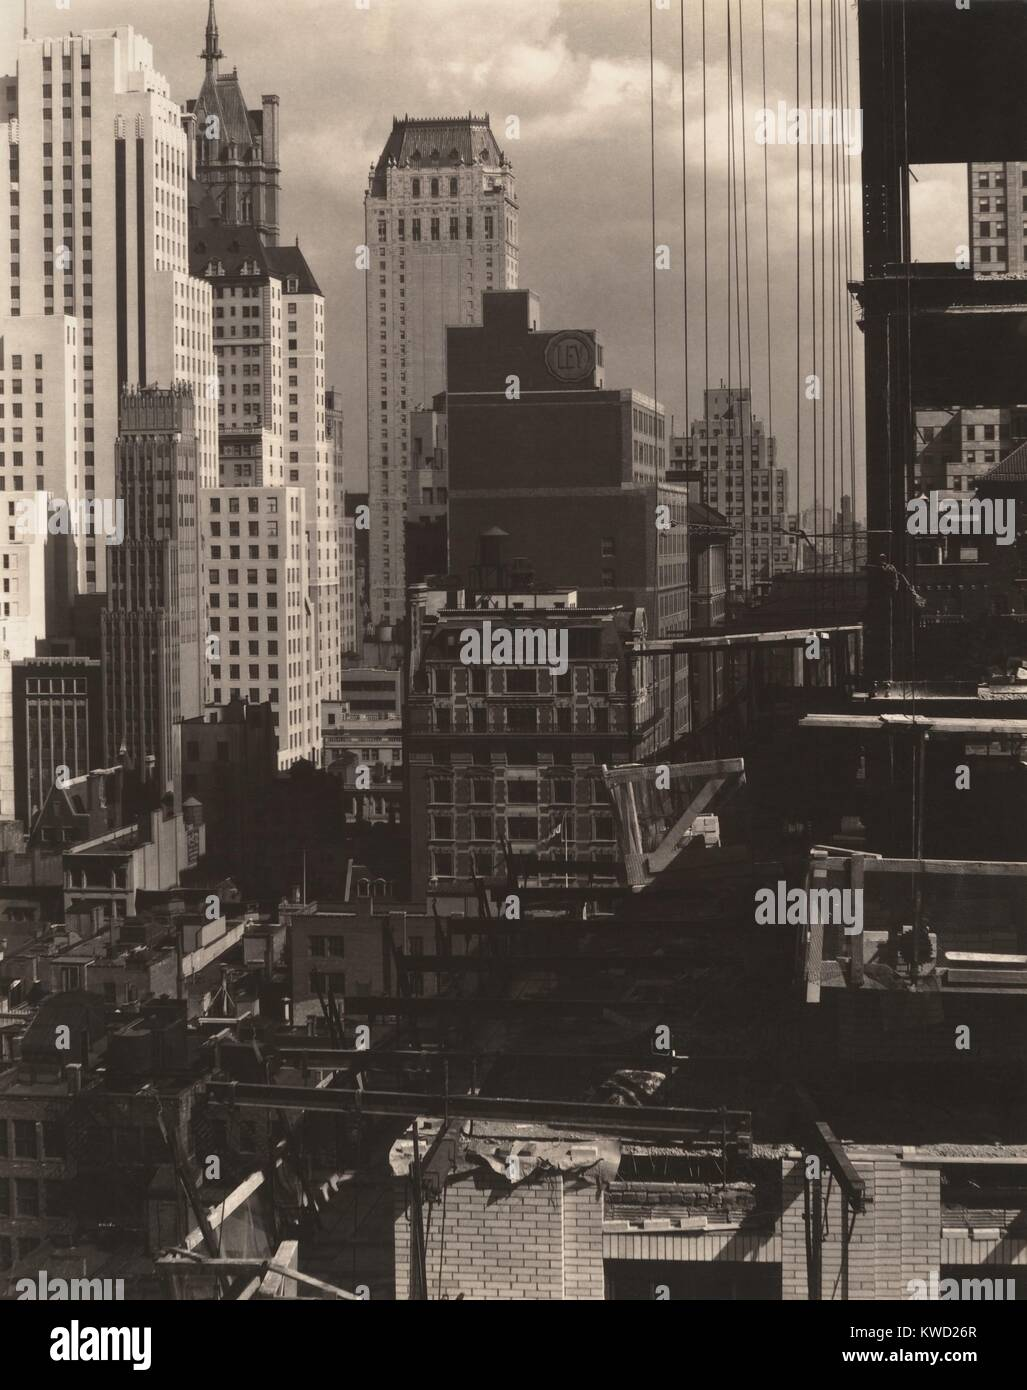 FROM MY WINDOW AT AN AMERICAN PLACE, NORTH, by Alfred Stieglitz, 1931. New York City buildings photographed from - Stock Image